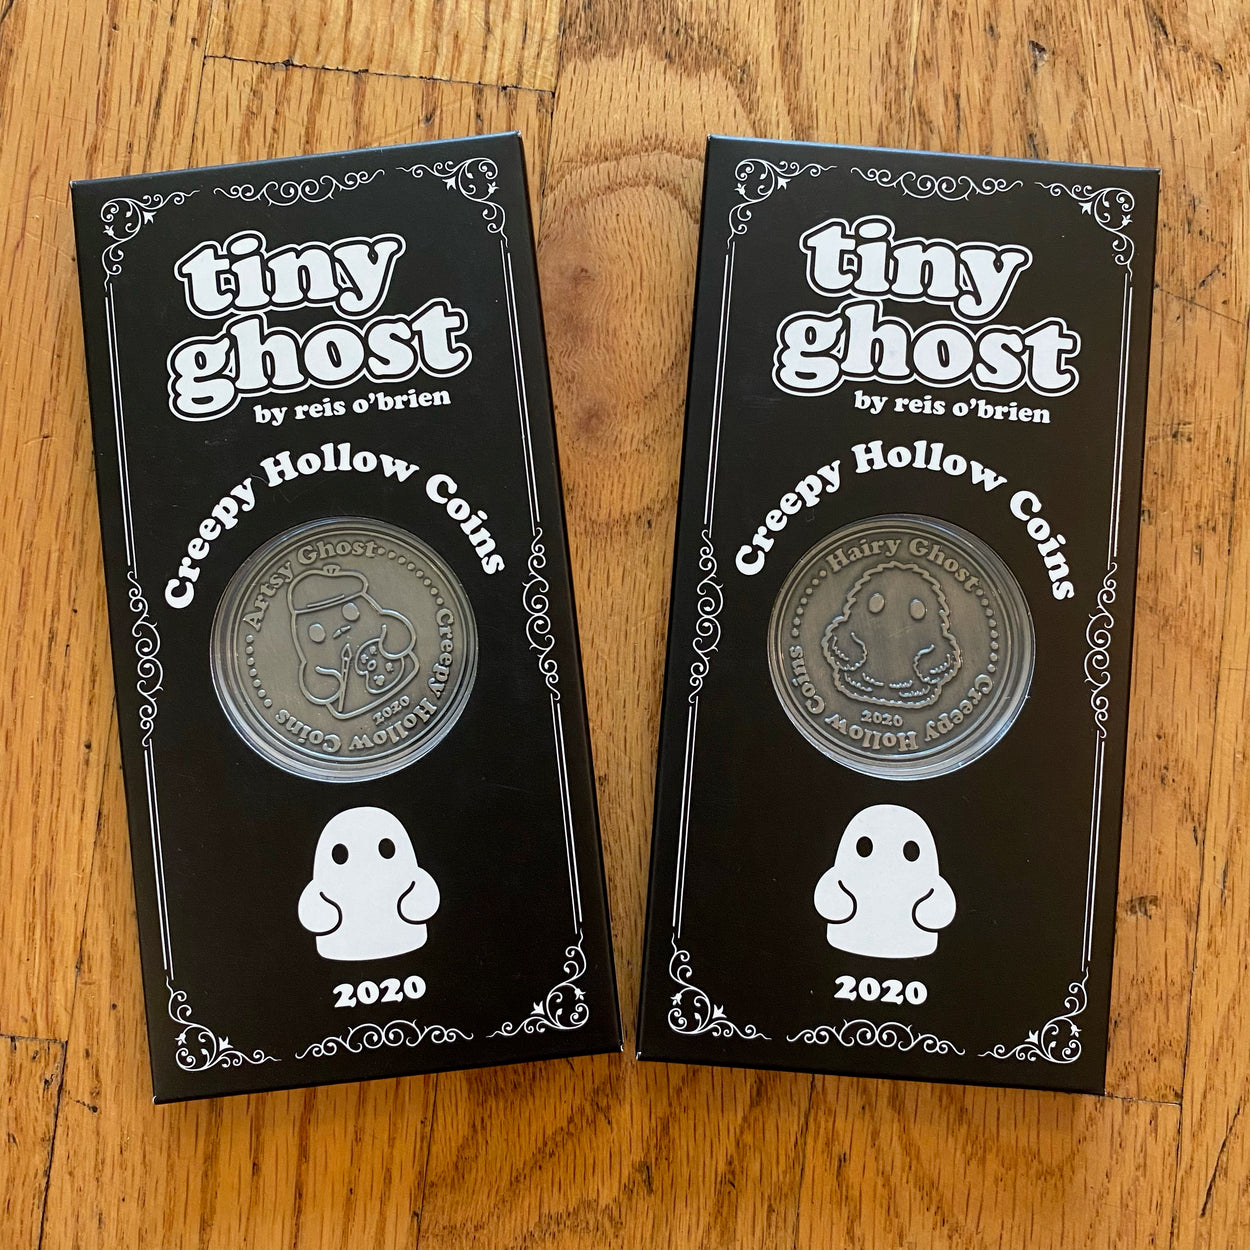 Creepy Hollow (Hairy & Artsy) Collectible Coins